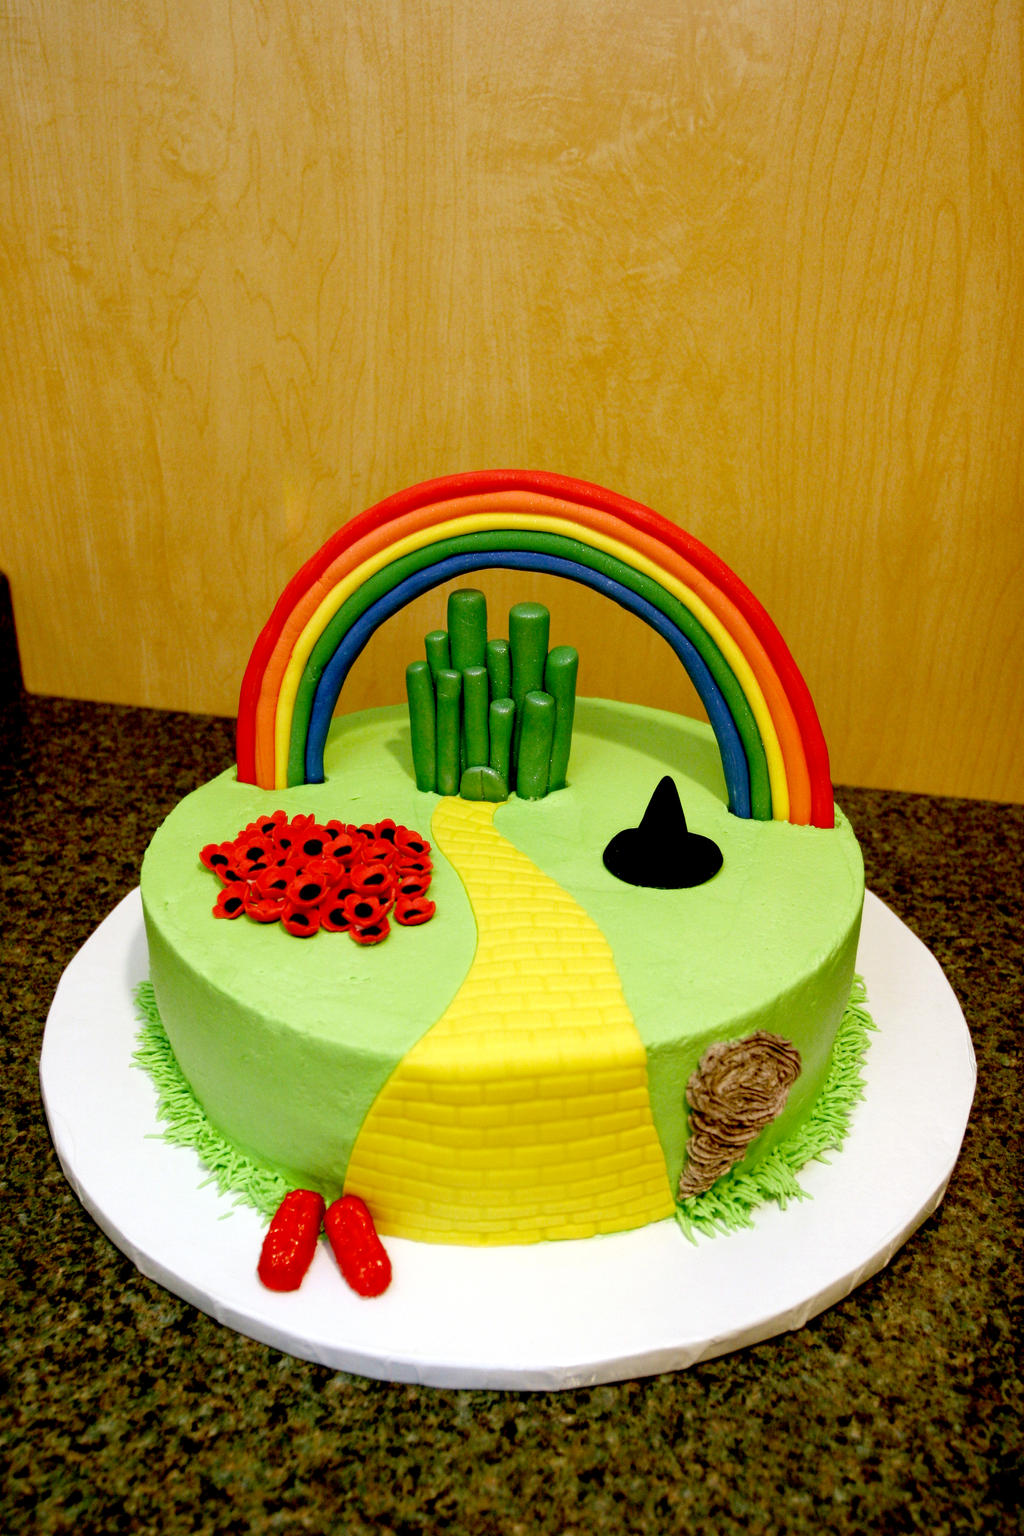 Cake Decorations For Wizard Of Oz : wizard of oz cake by pinkshoegirl on DeviantArt